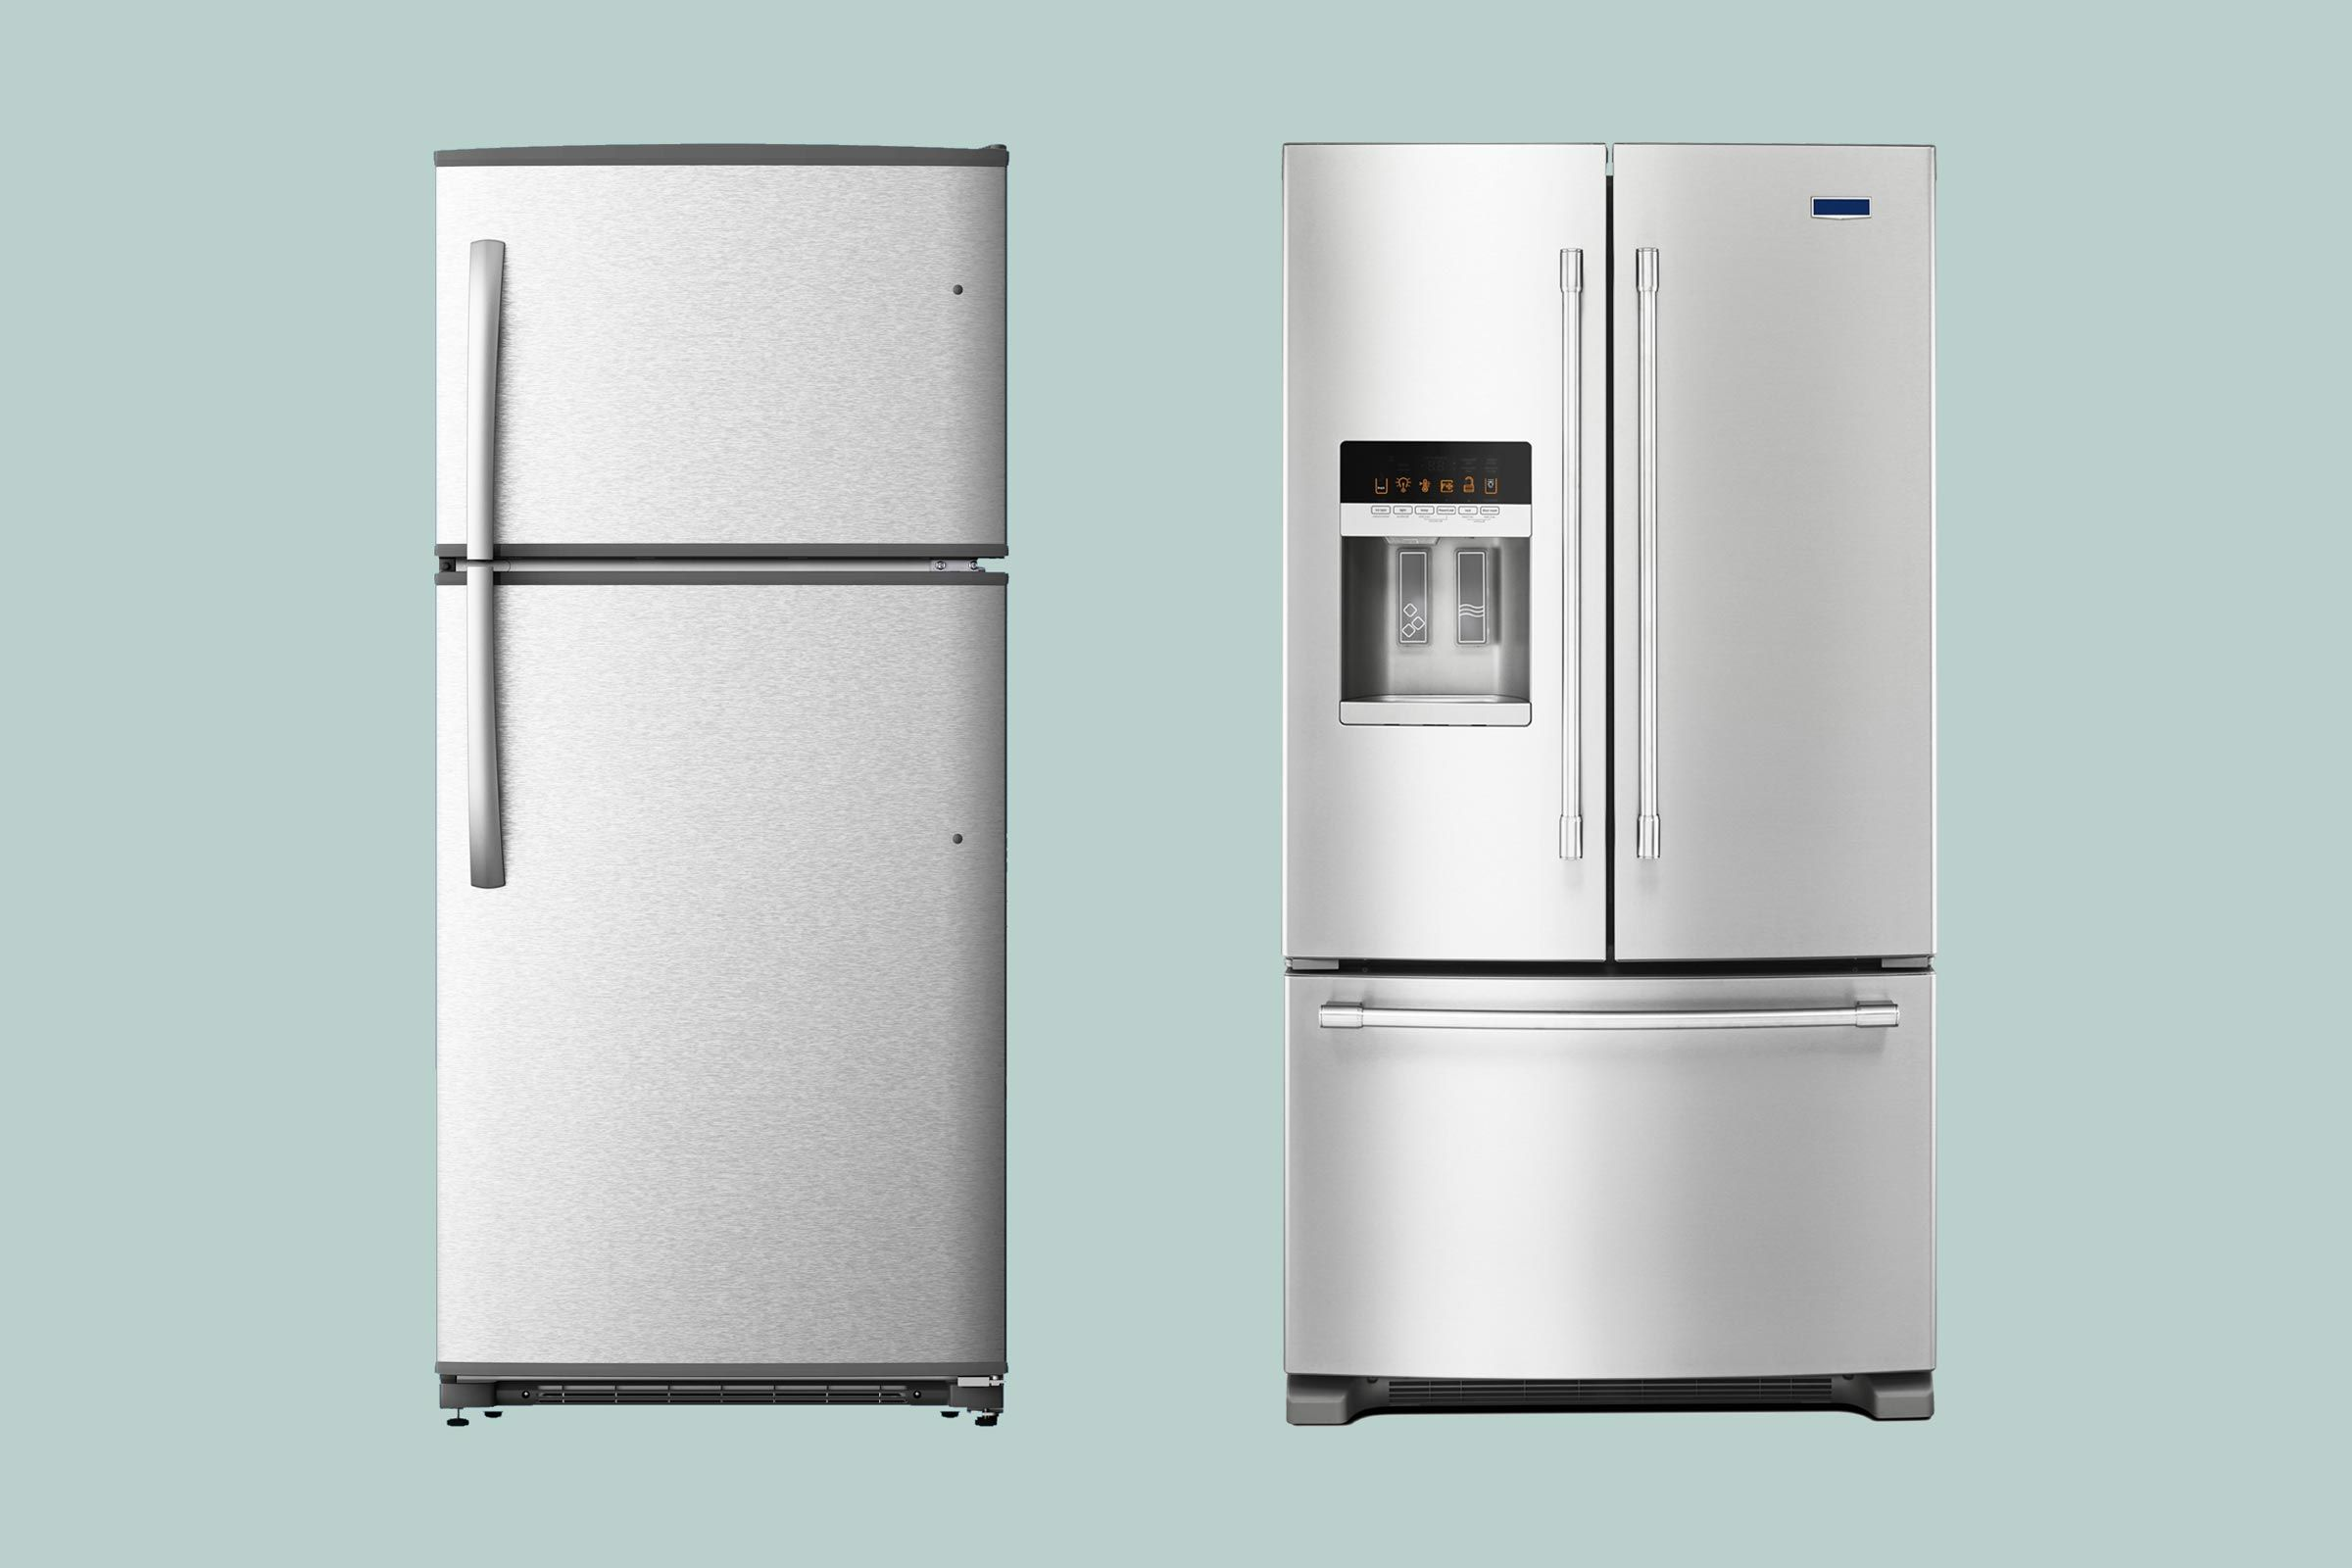 Bottom Freezer Vs Top Freezer Which One S Better In 2020 Bottom Freezer Freezer Bottom Freezer Refrigerator